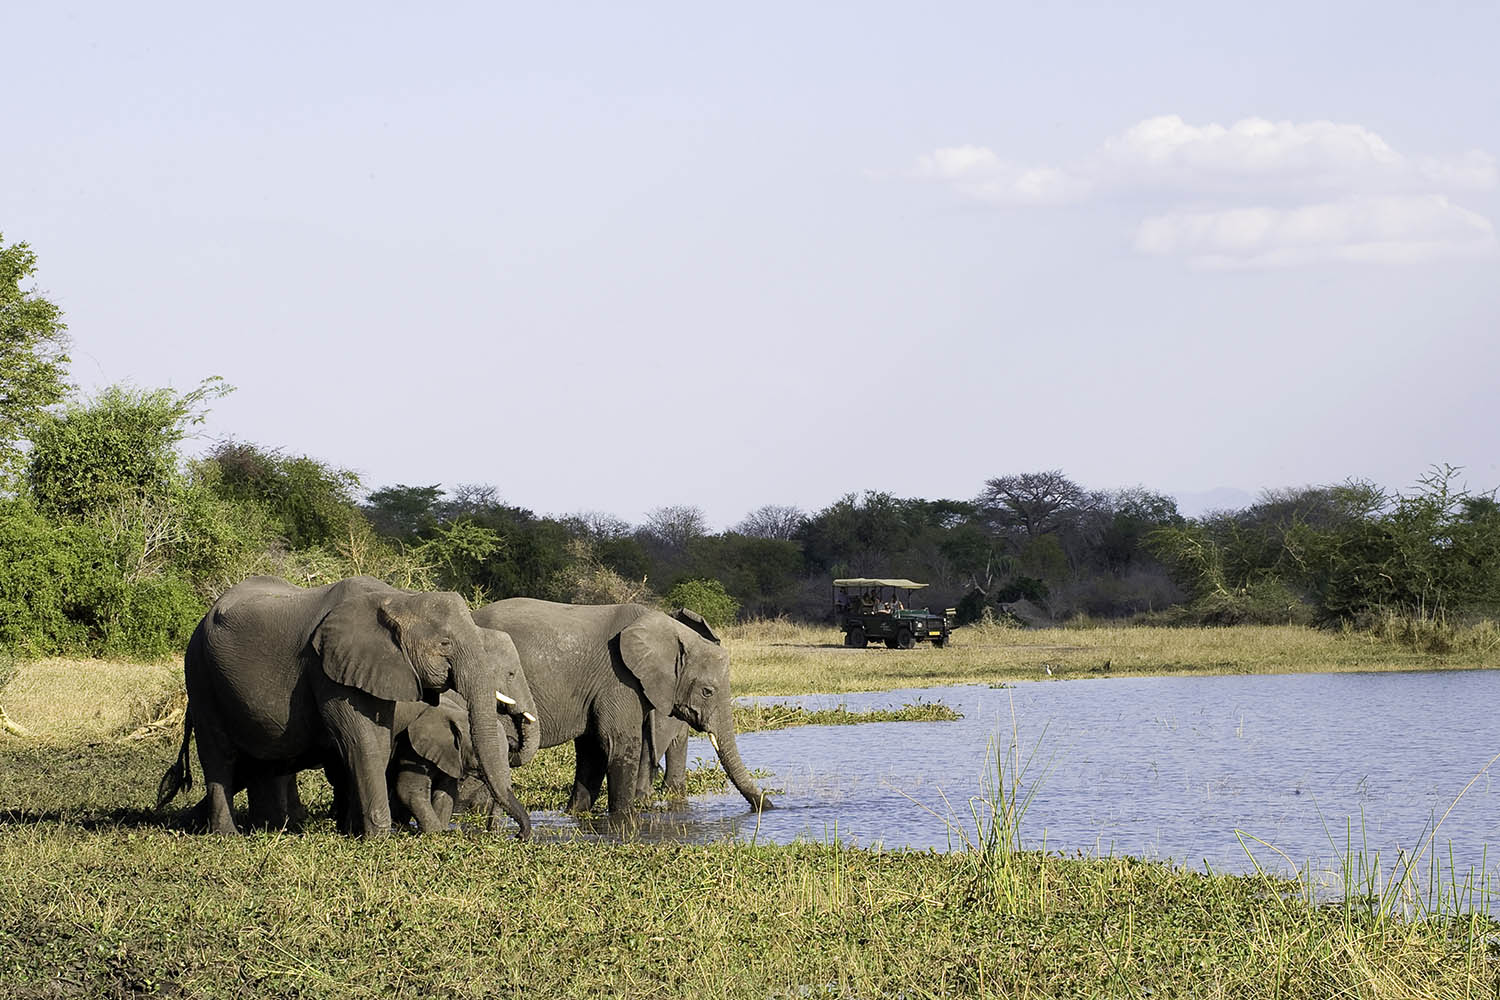 liwonde national park malawian-style-malawi-adventures-experiences-holidays-specialist-tour-operator-malawi-national-parks-reserves-mvuu-game-drive